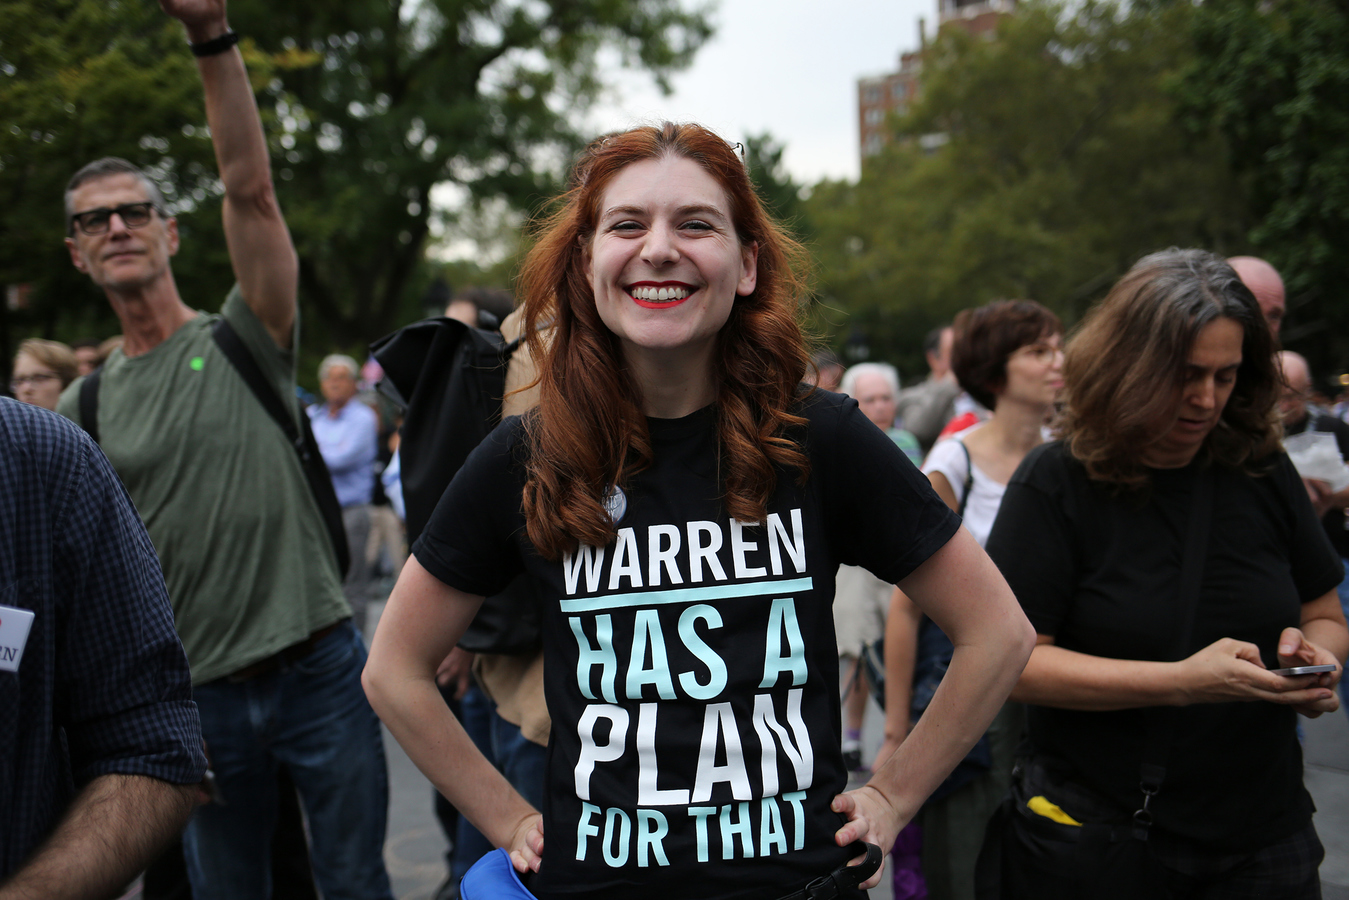 USA 2017- Elizabeth Warren Rally Washington Square Park 9/16/19